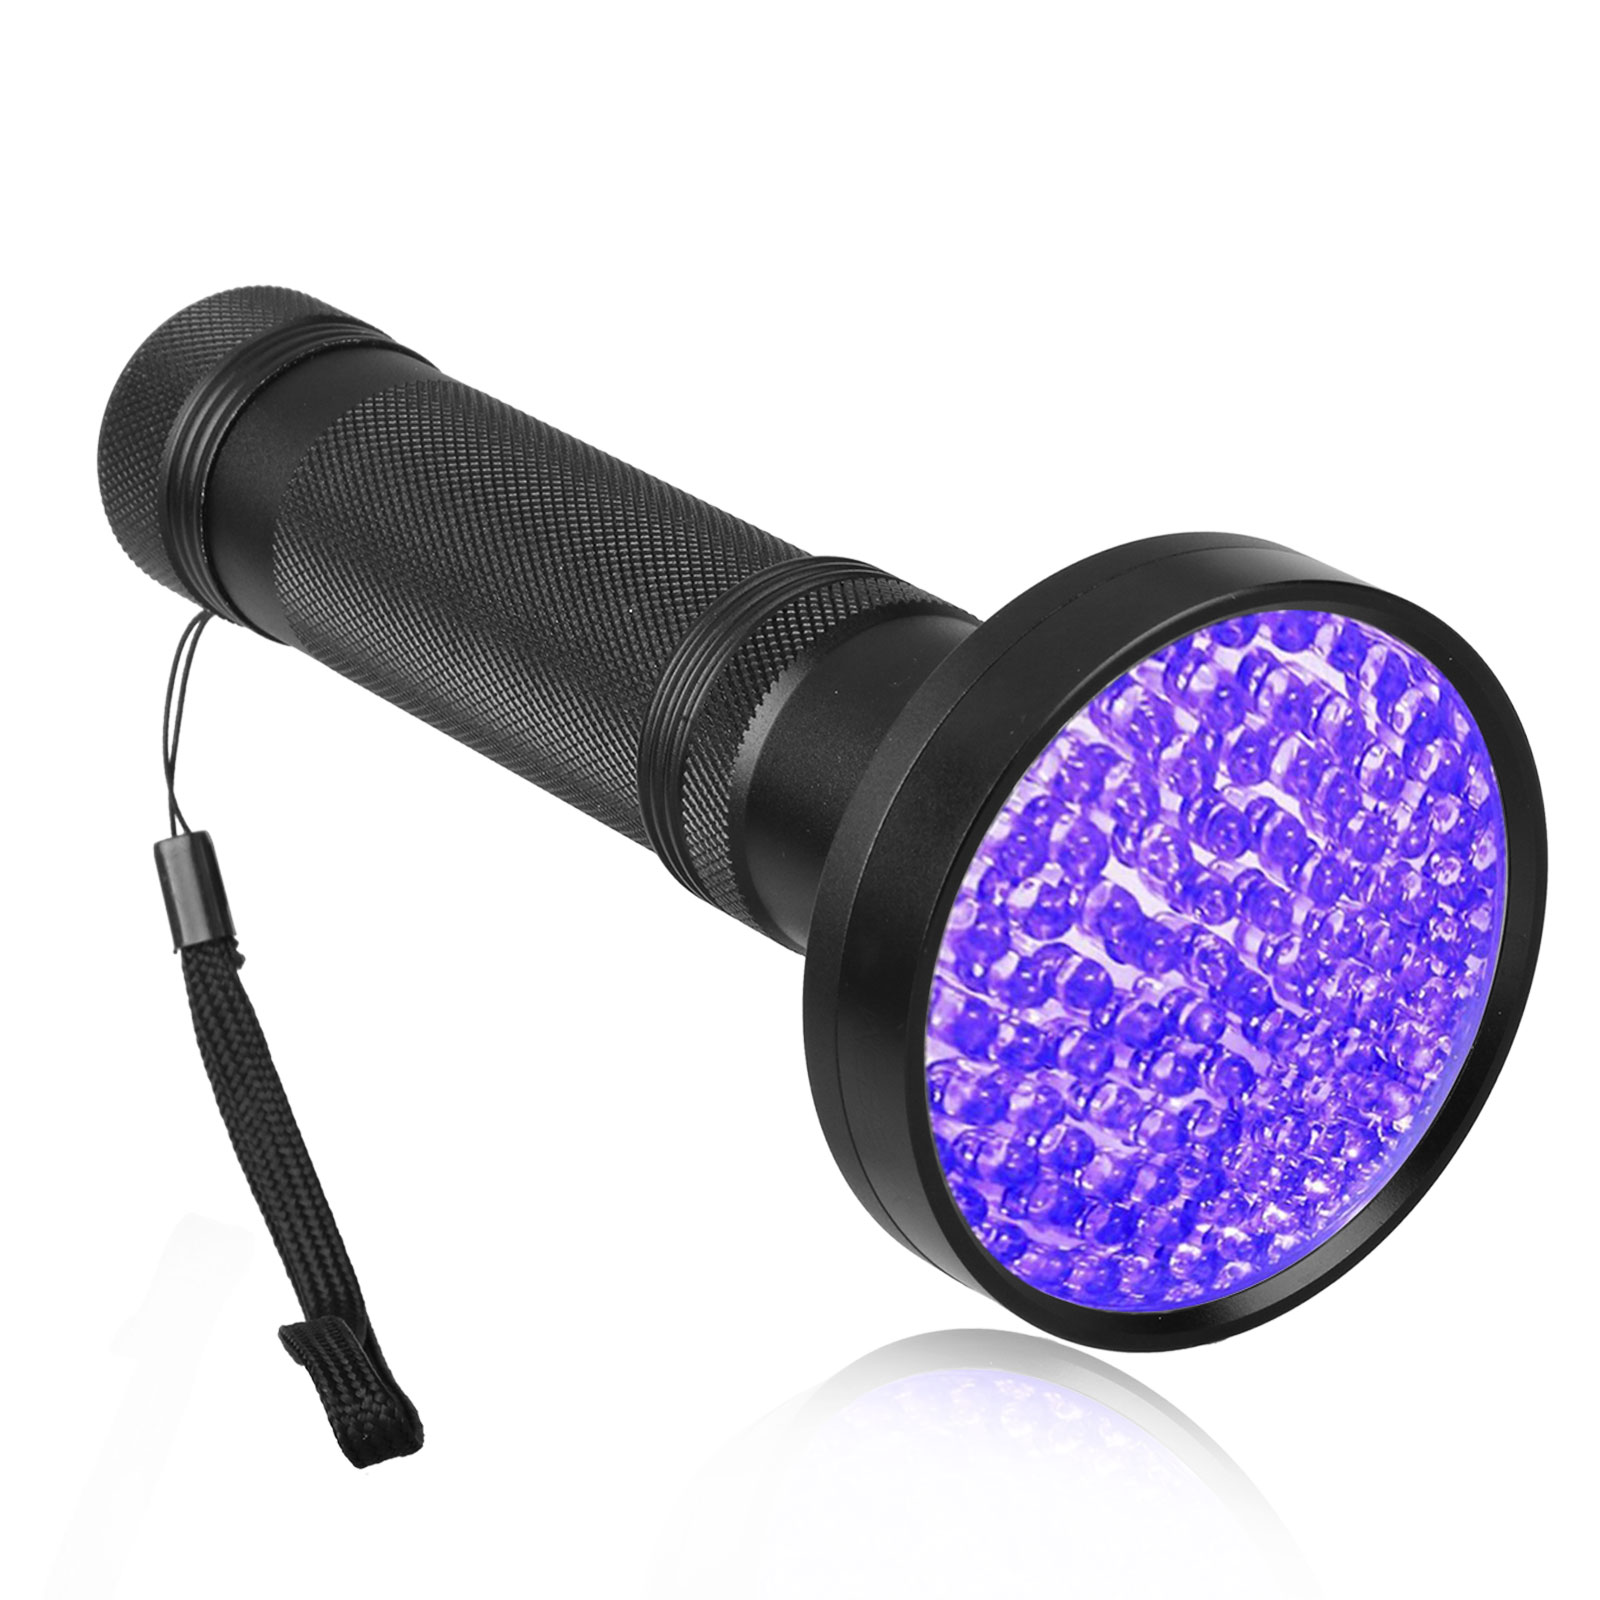 100 LEDs UV UltraViolet Blacklight Flashlight Lamp for Urine Detection, Finding Scorpions, Bed Bugs and Dog & Cat Pee, 385-395nm